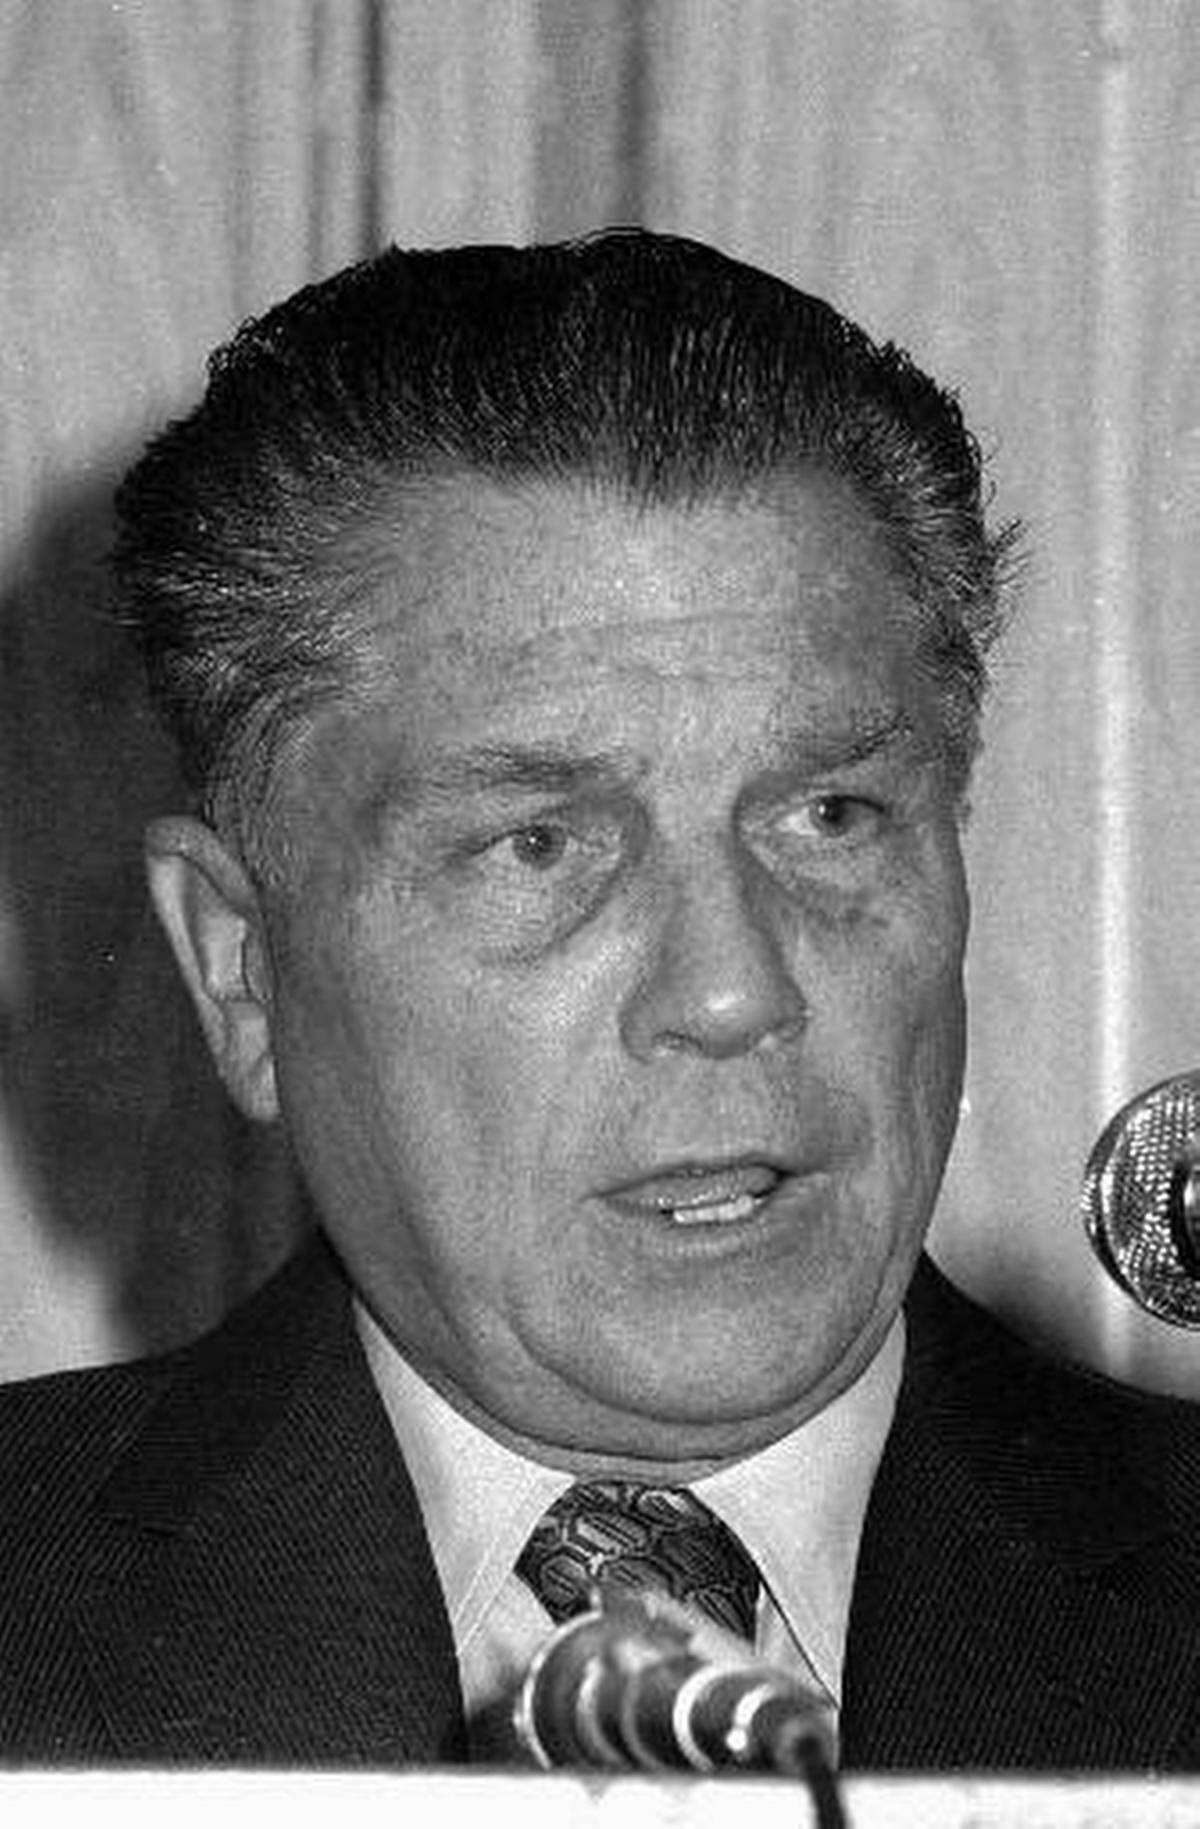 A 1974 photo of Teamsters Union President Jimmy Hoffa, who disappeared in late July 1975. His car was found abandoned in a parking lot in Michigan. (AP photo)